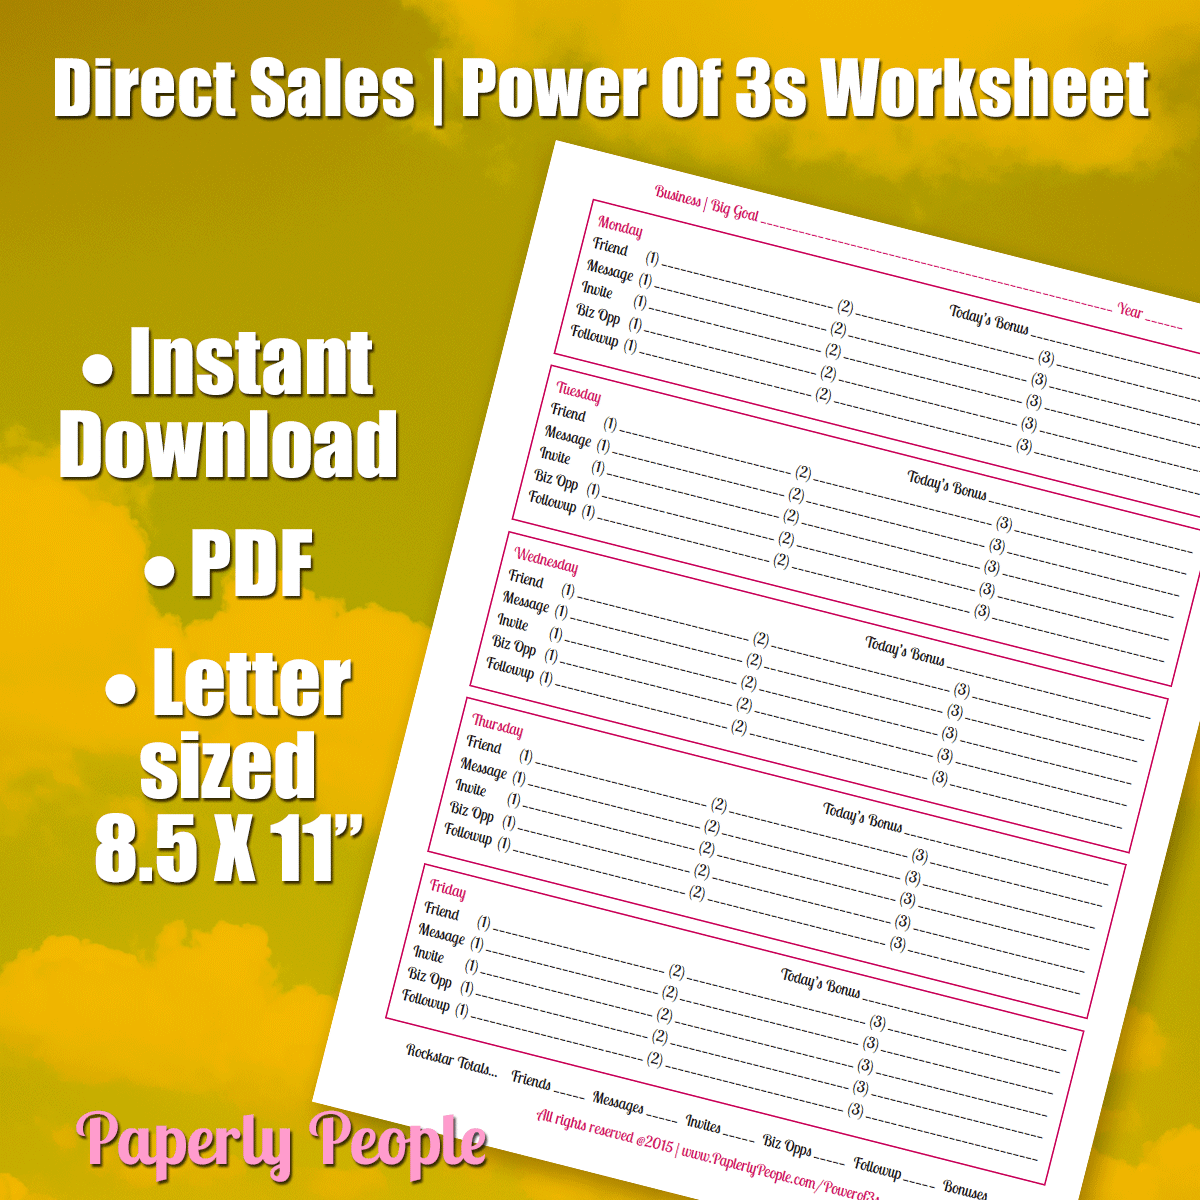 Direct Sales Power of 3s Worksheet